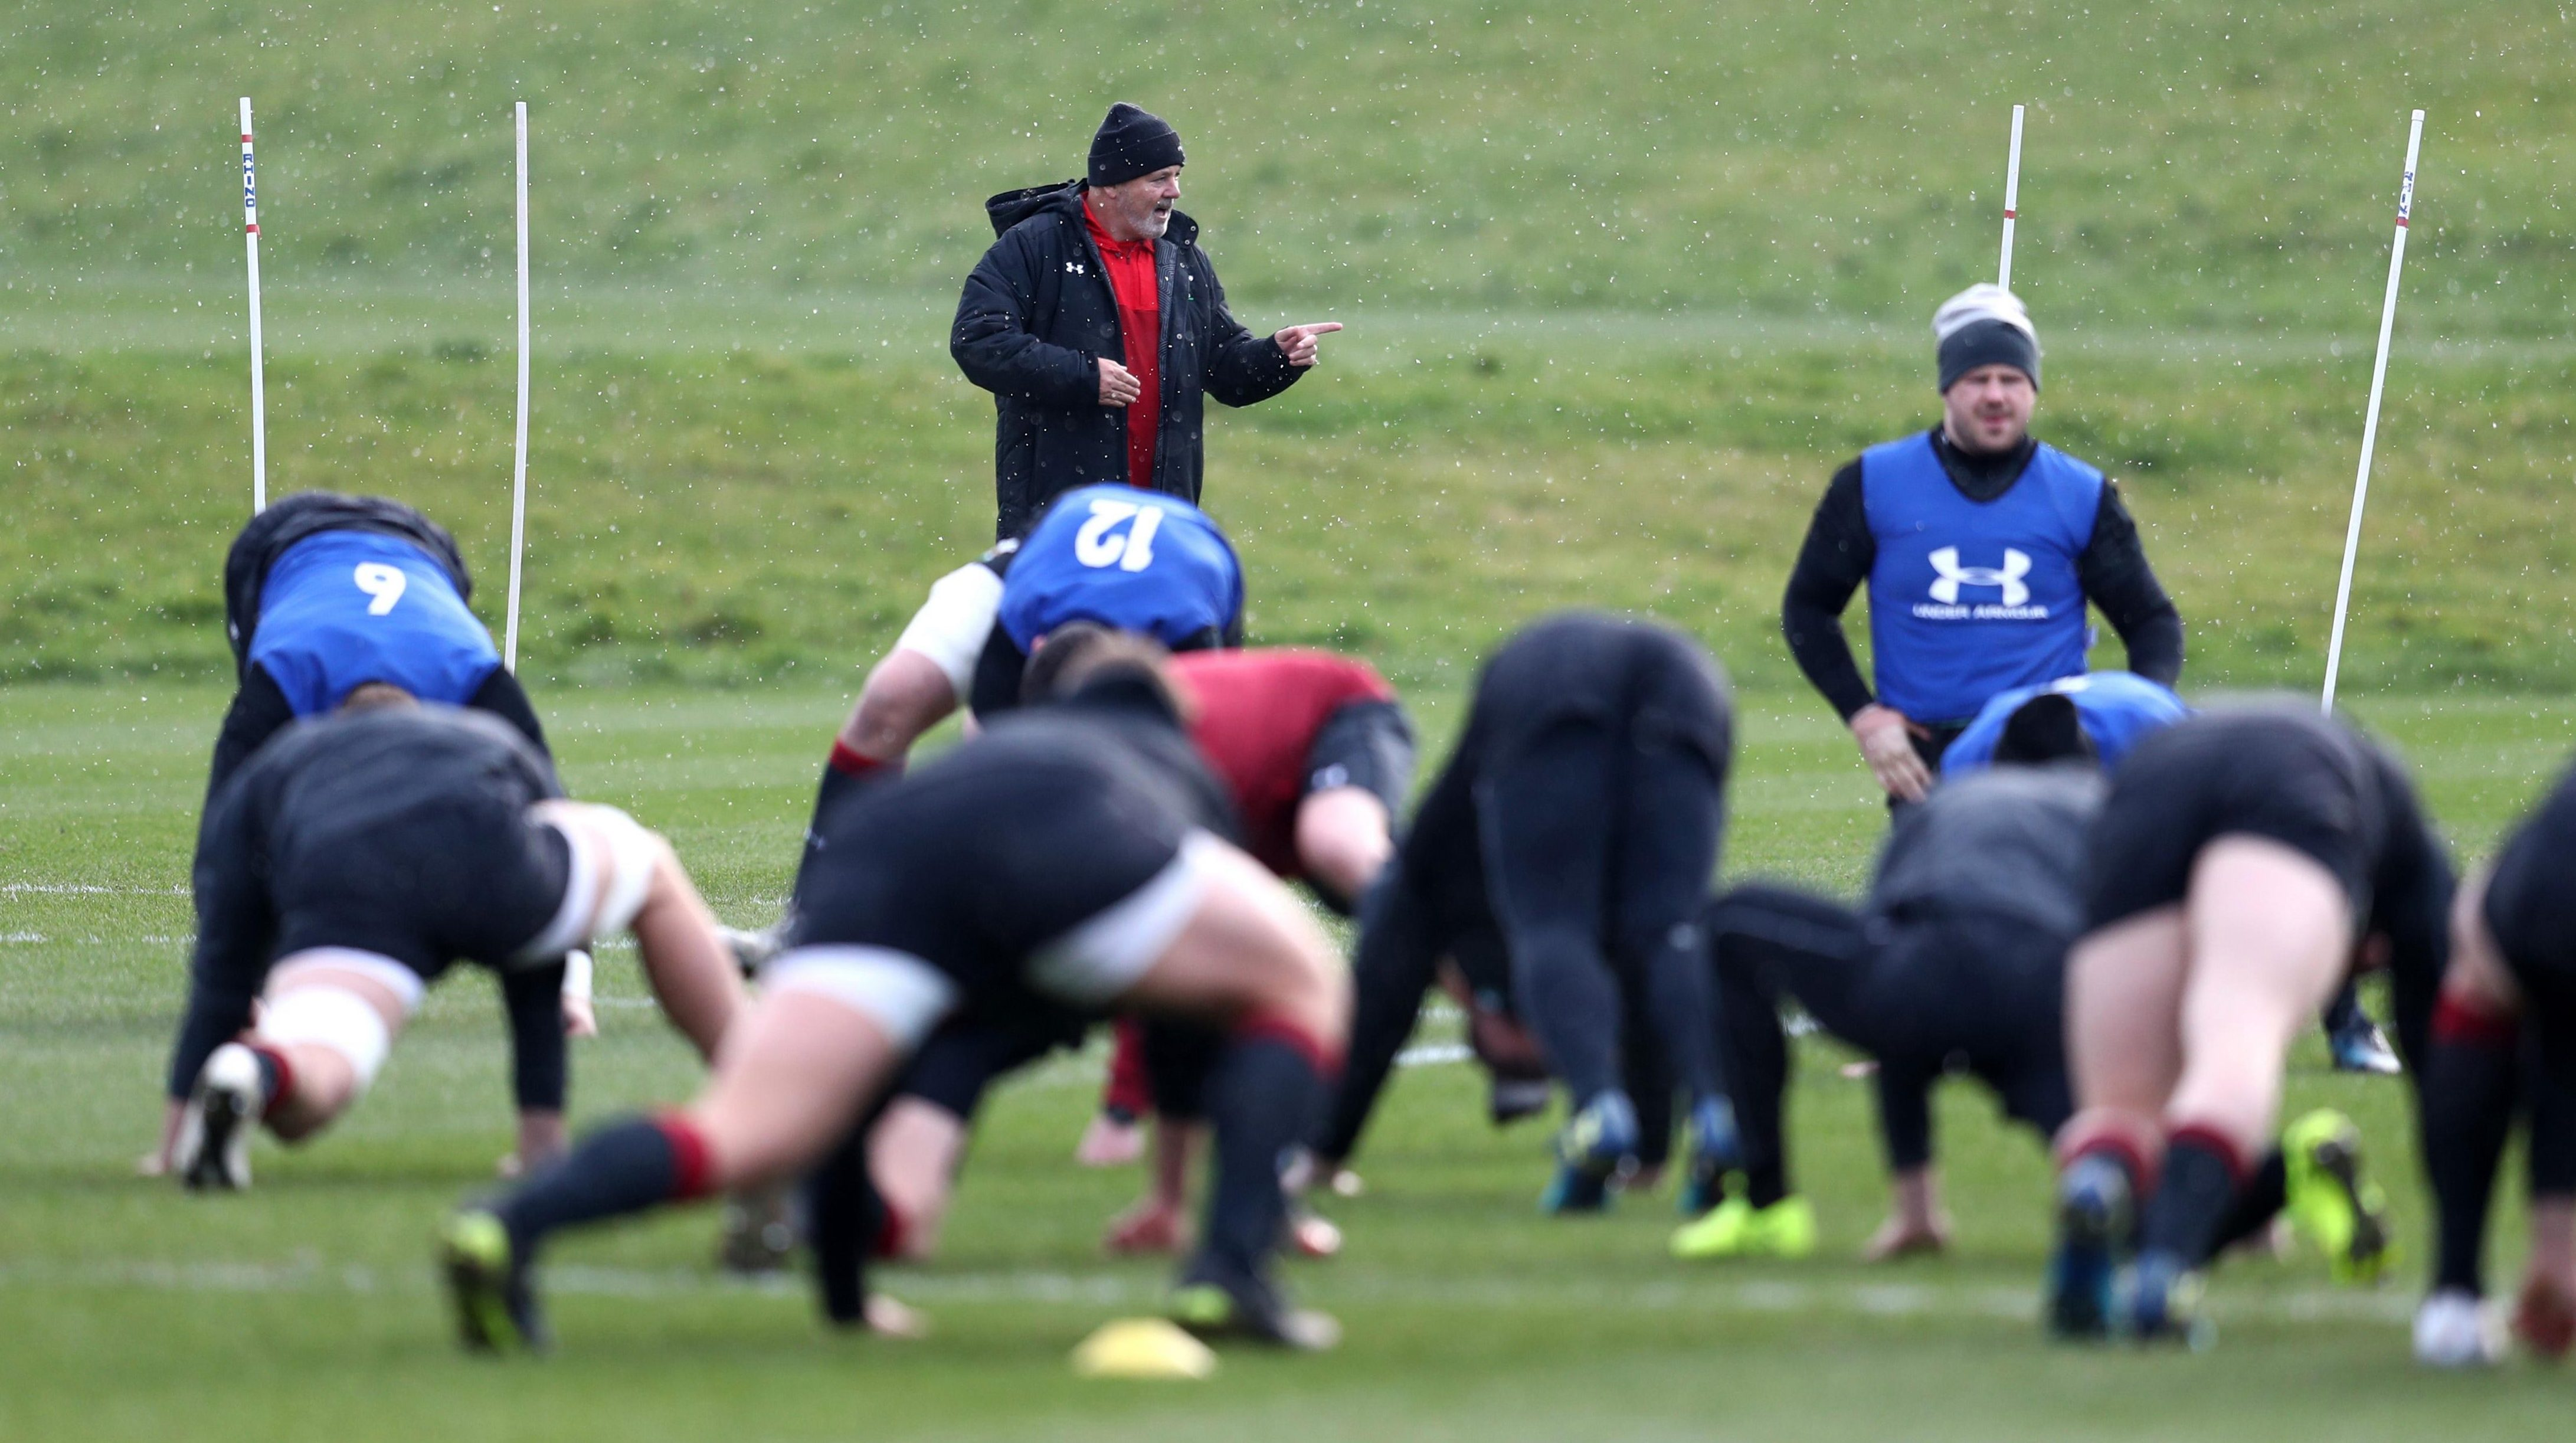 Wales face England in the Six Nations crunch